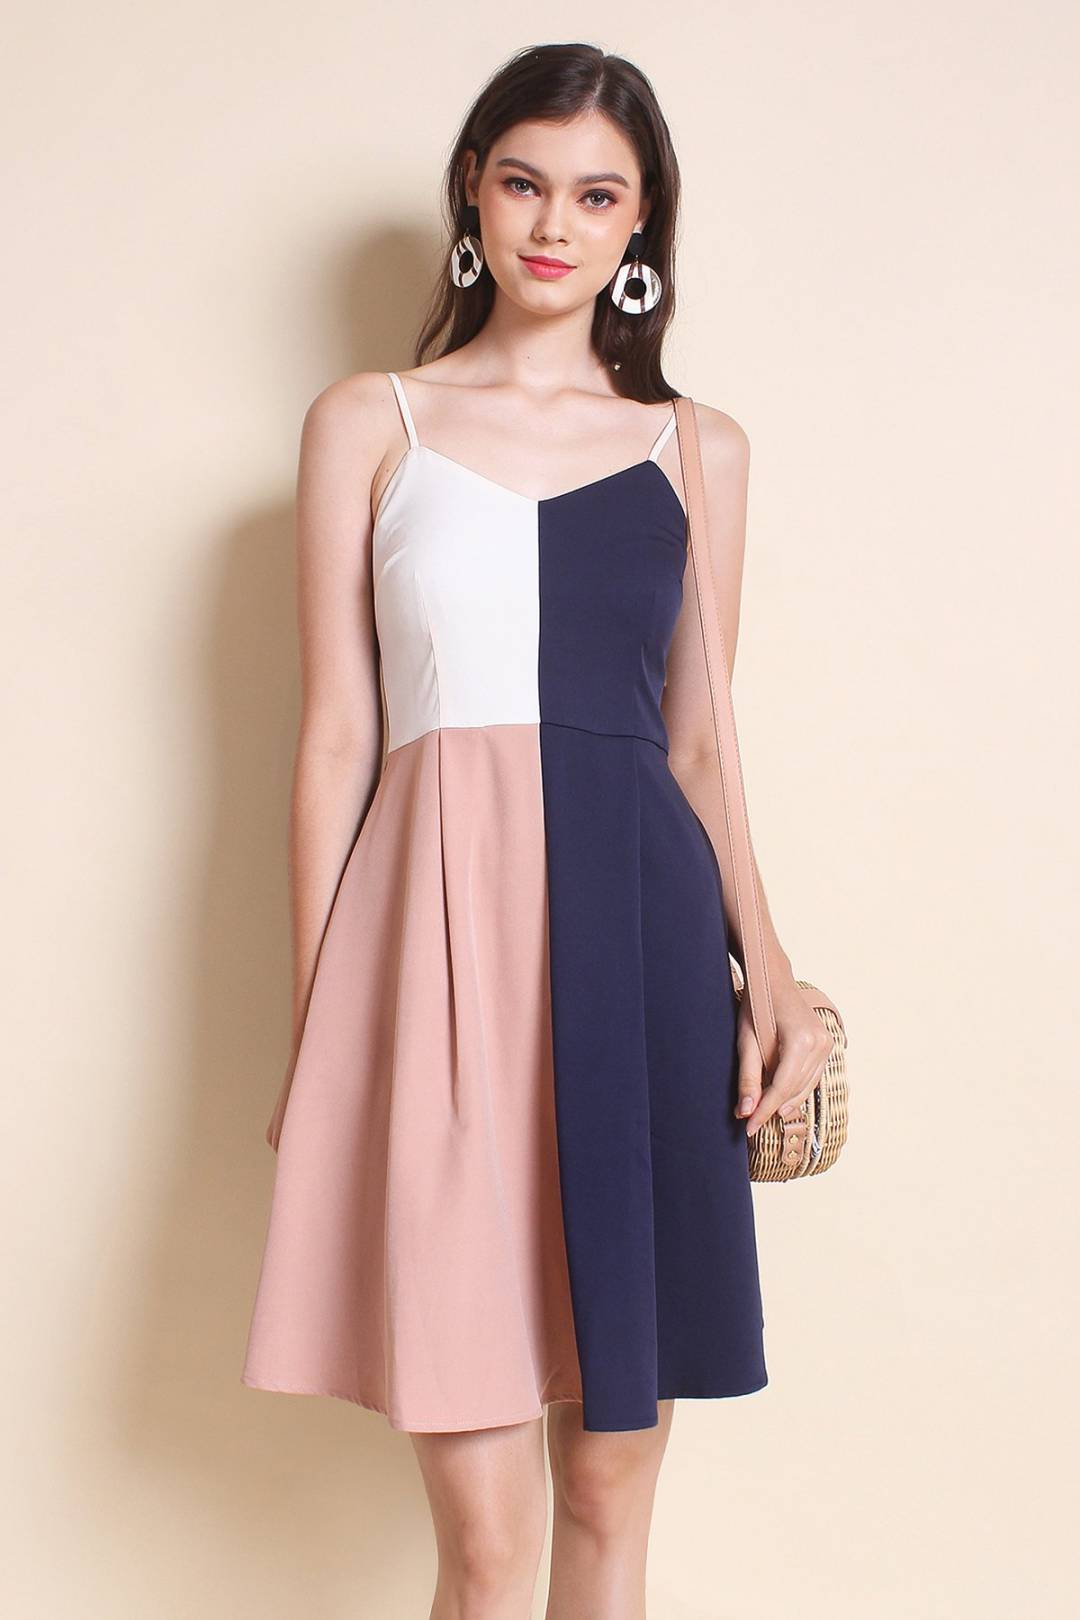 LEONIE COLOURBLOCK SPAG WORK DRESS IN NAVY/PINK [XS/S/M/L]